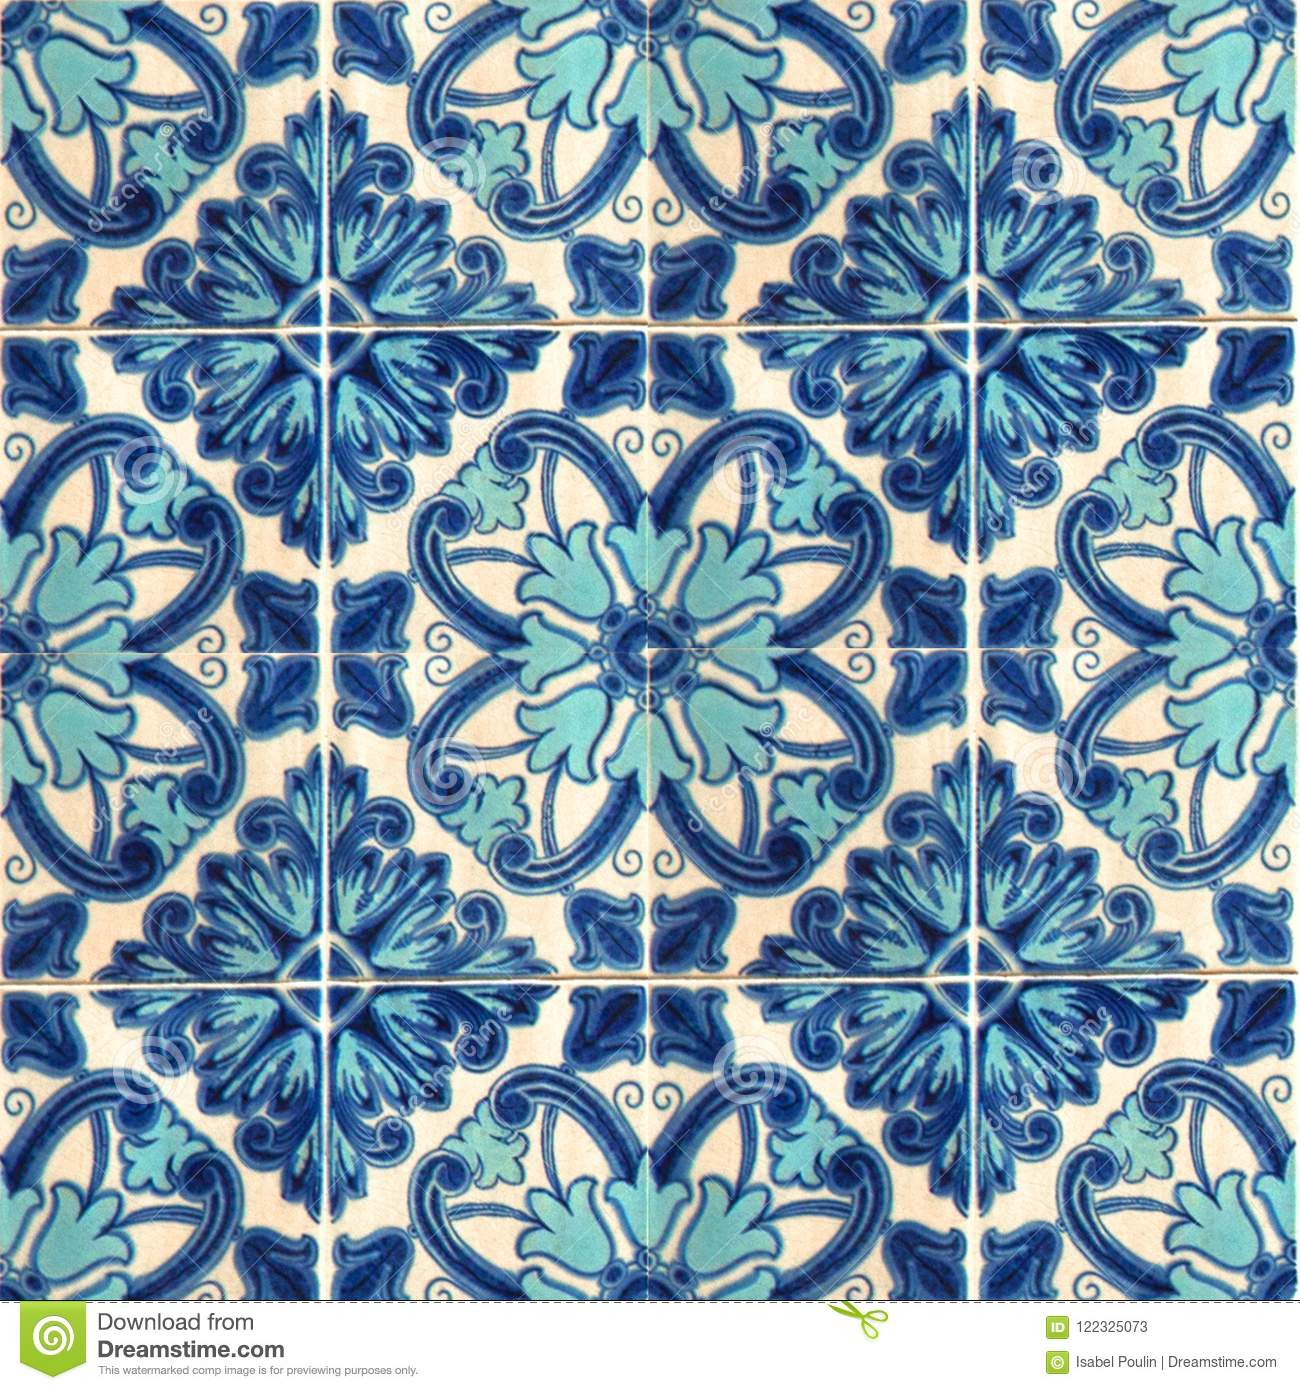 Collection Of Blue Patterns Tiles Stock Image - Image of moroccan ...